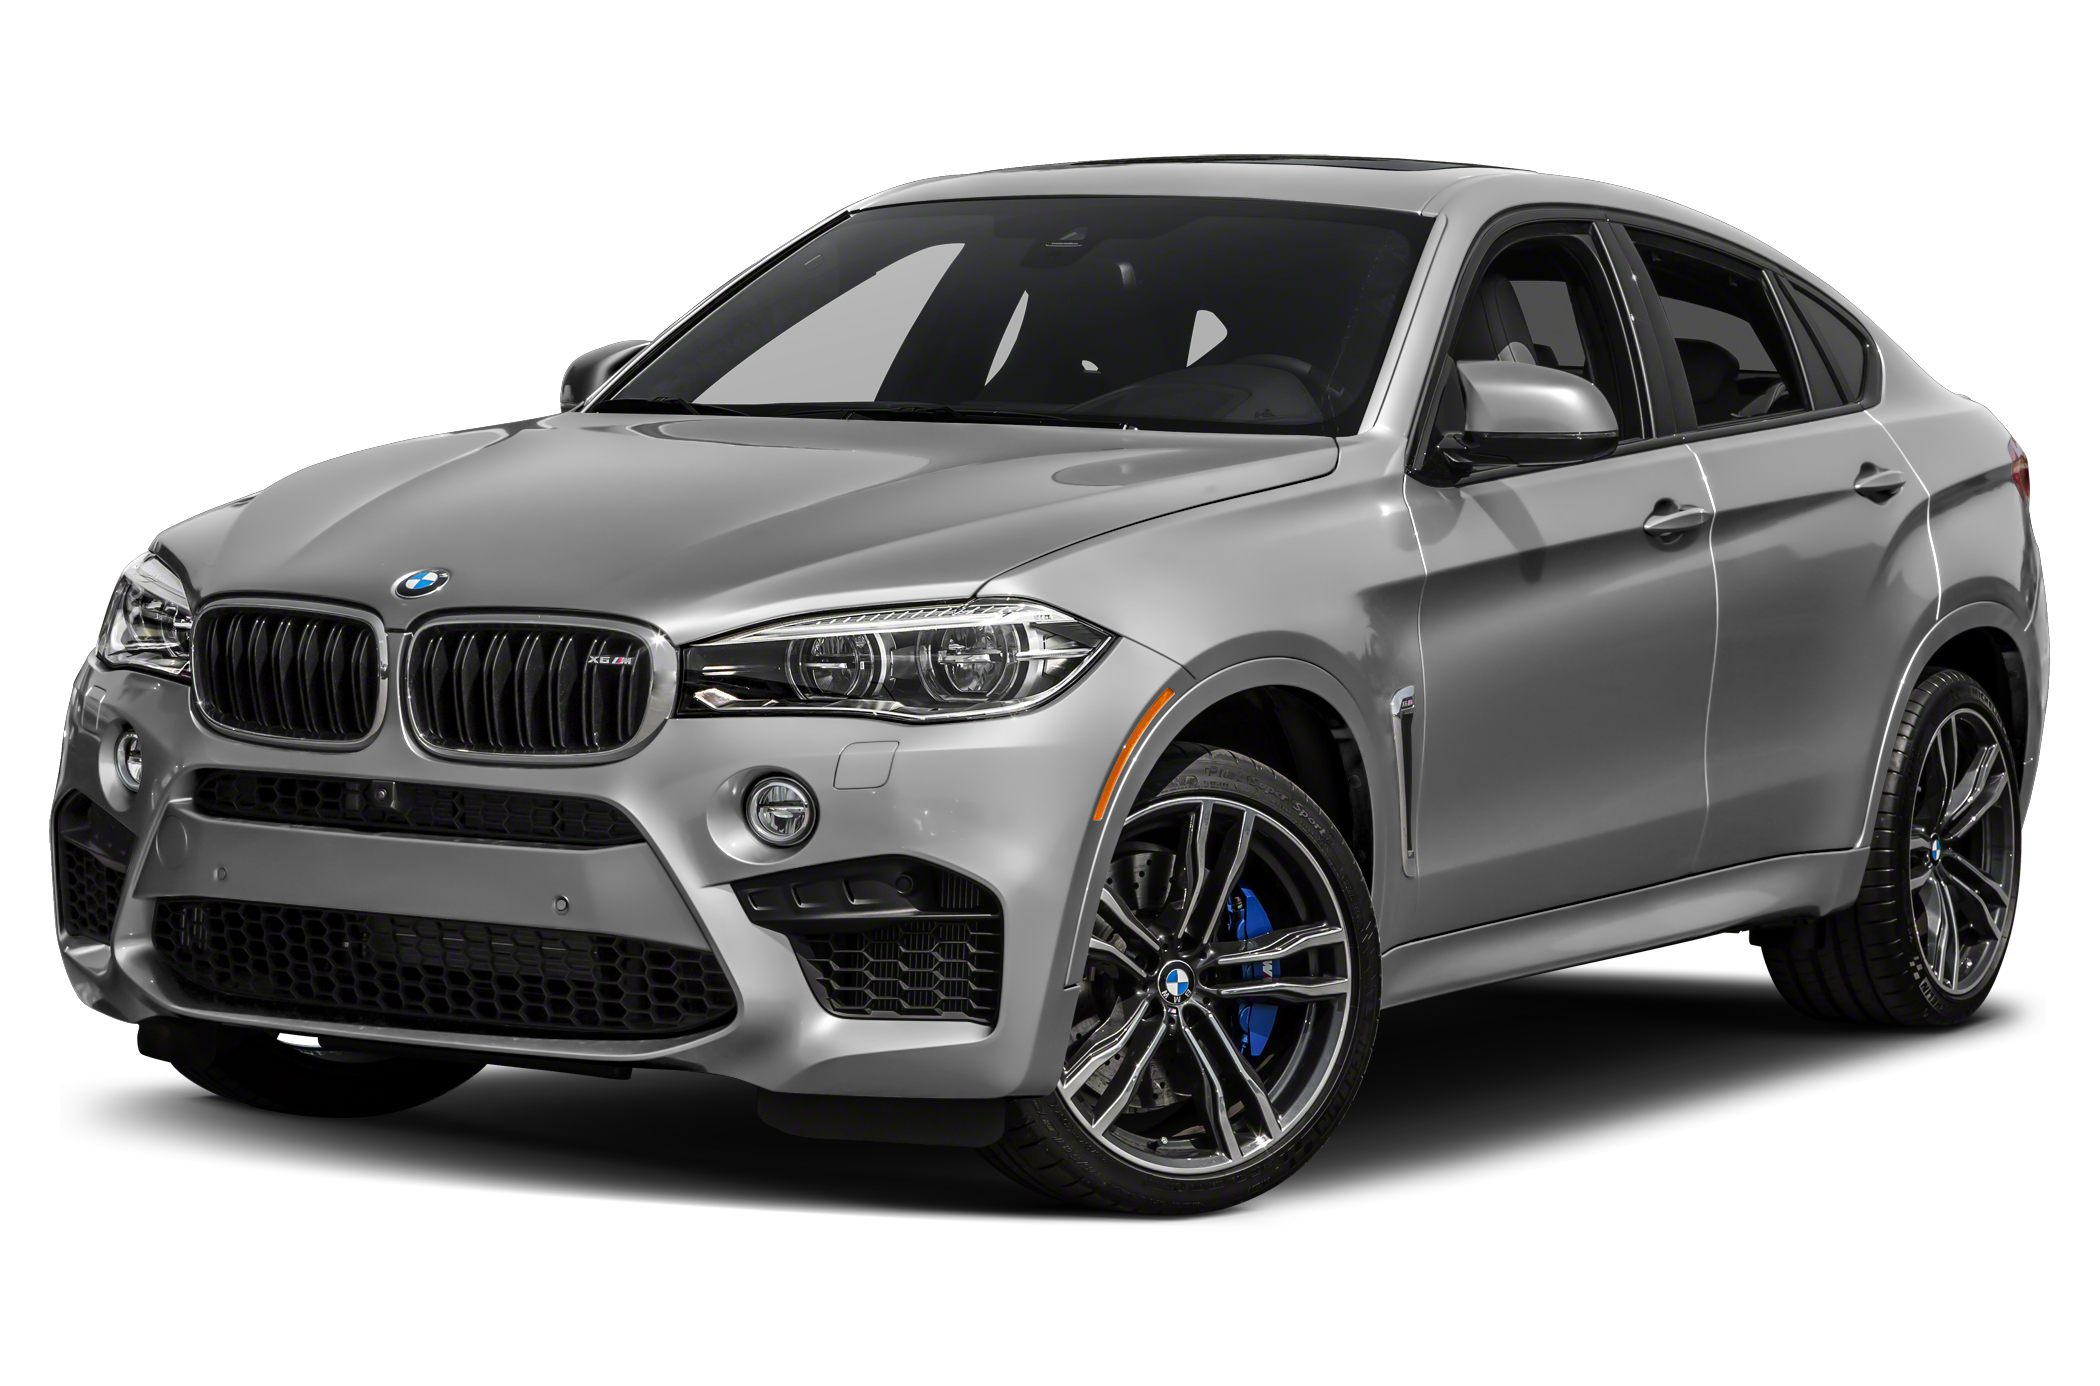 2016 bmw x6 m photo gallery autoblog. Black Bedroom Furniture Sets. Home Design Ideas